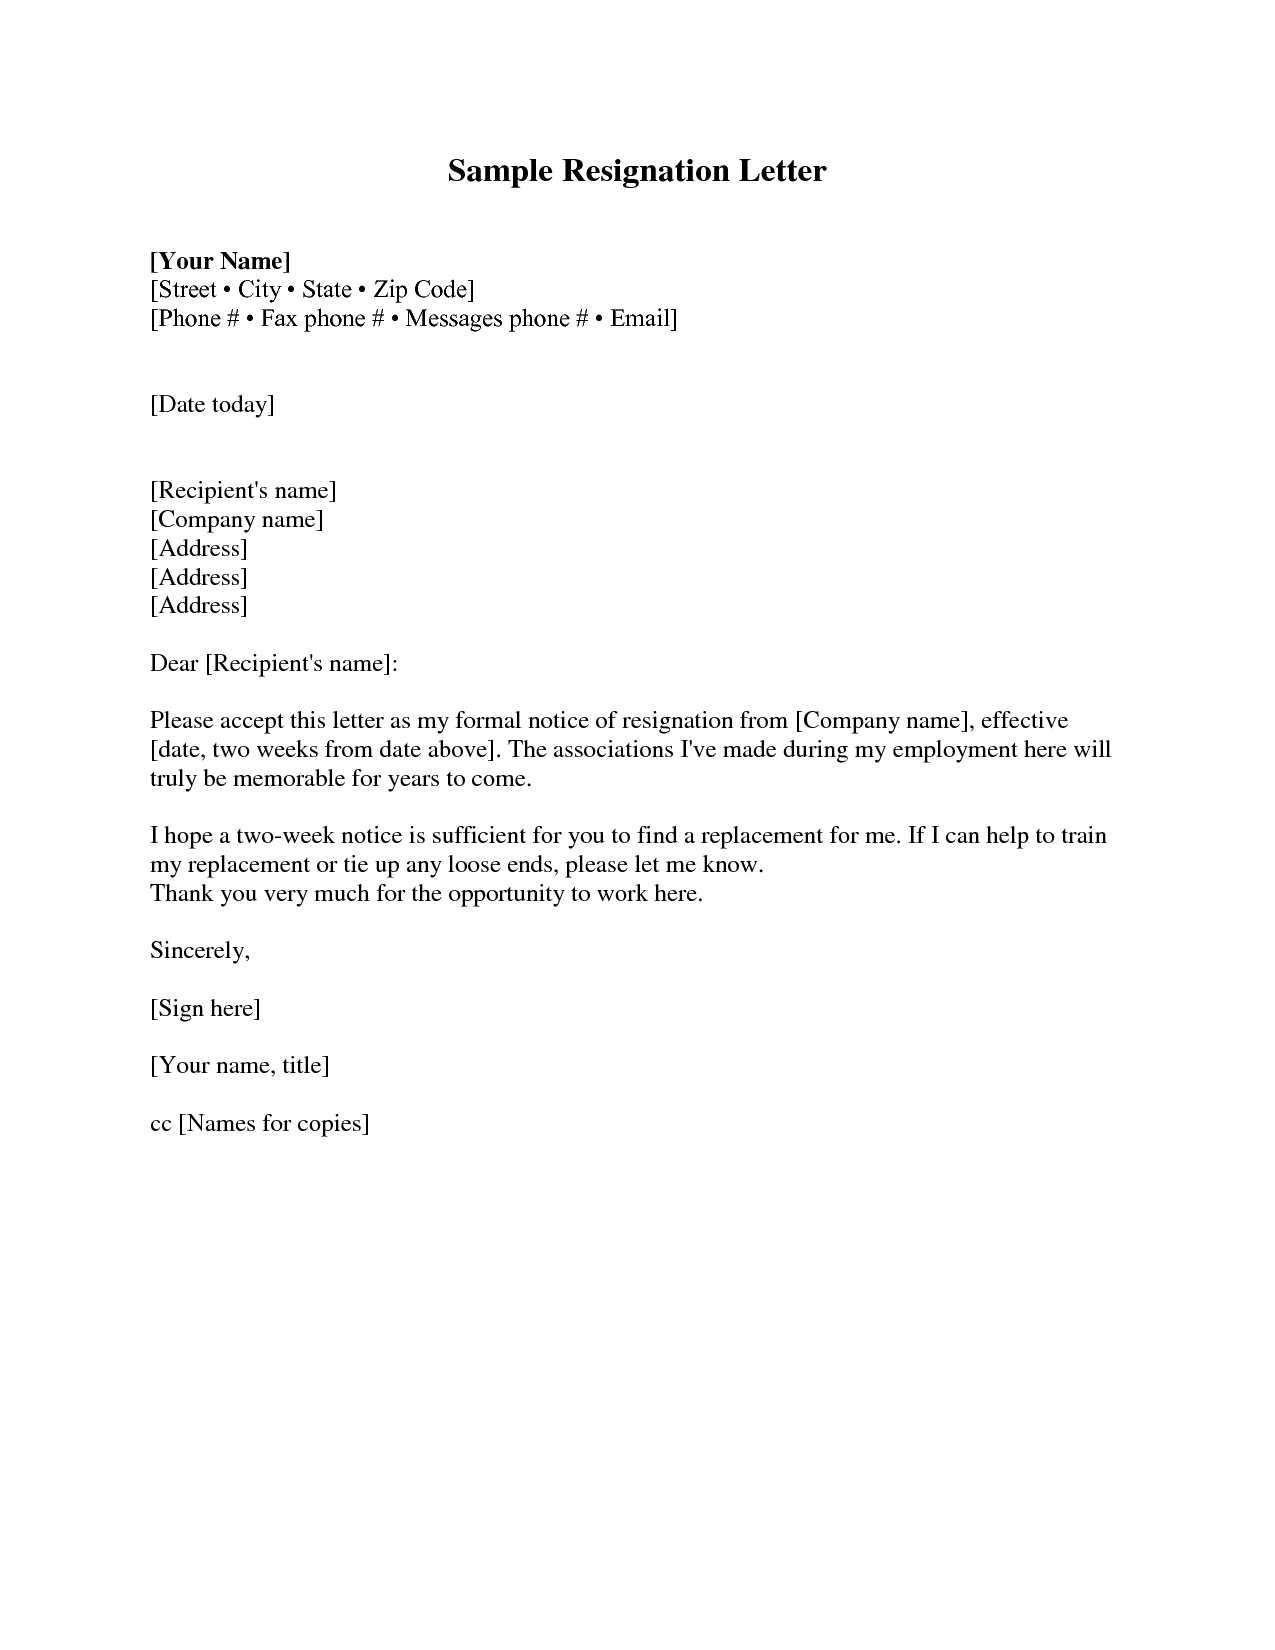 Writing A Formal Resignation Letter degree in microsoft word – Writing Letters of Resignation